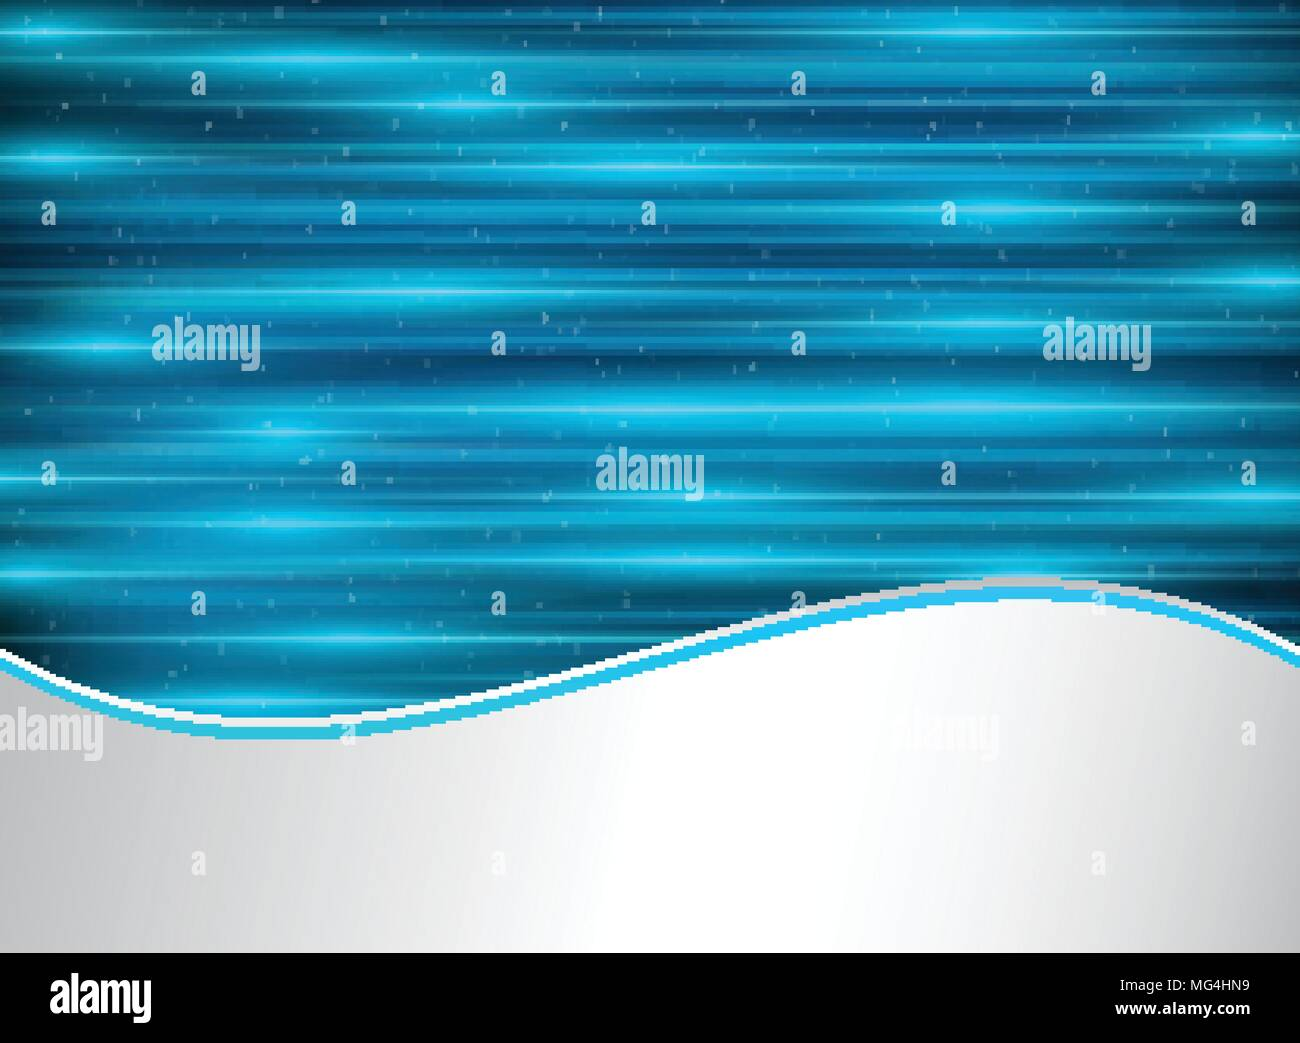 abstract technology blue laser lines horizontal with lighting effect